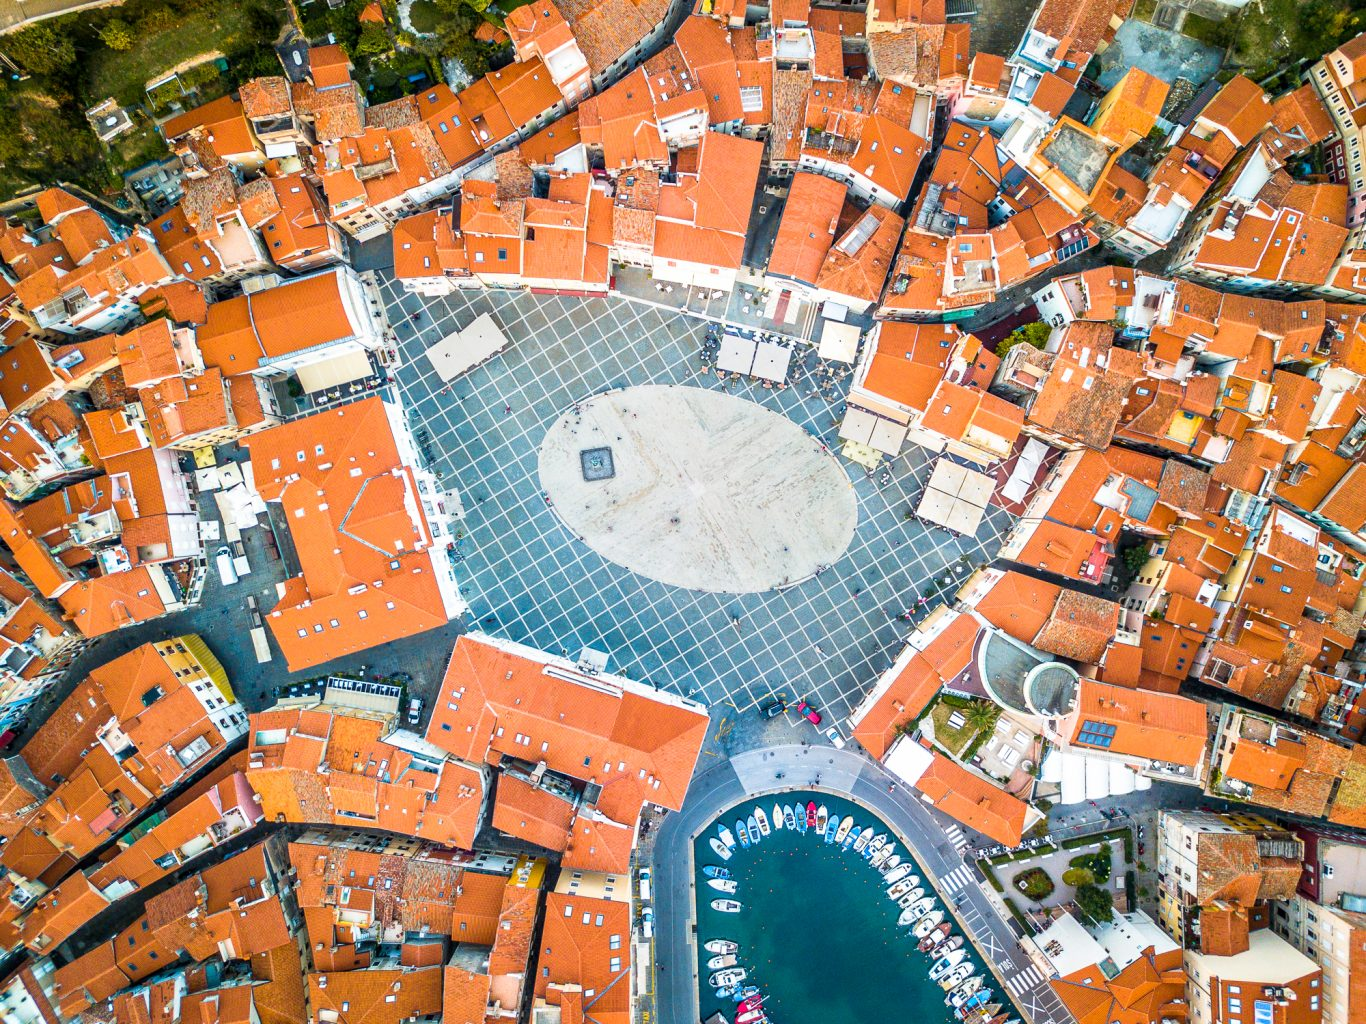 Tartini Square from above